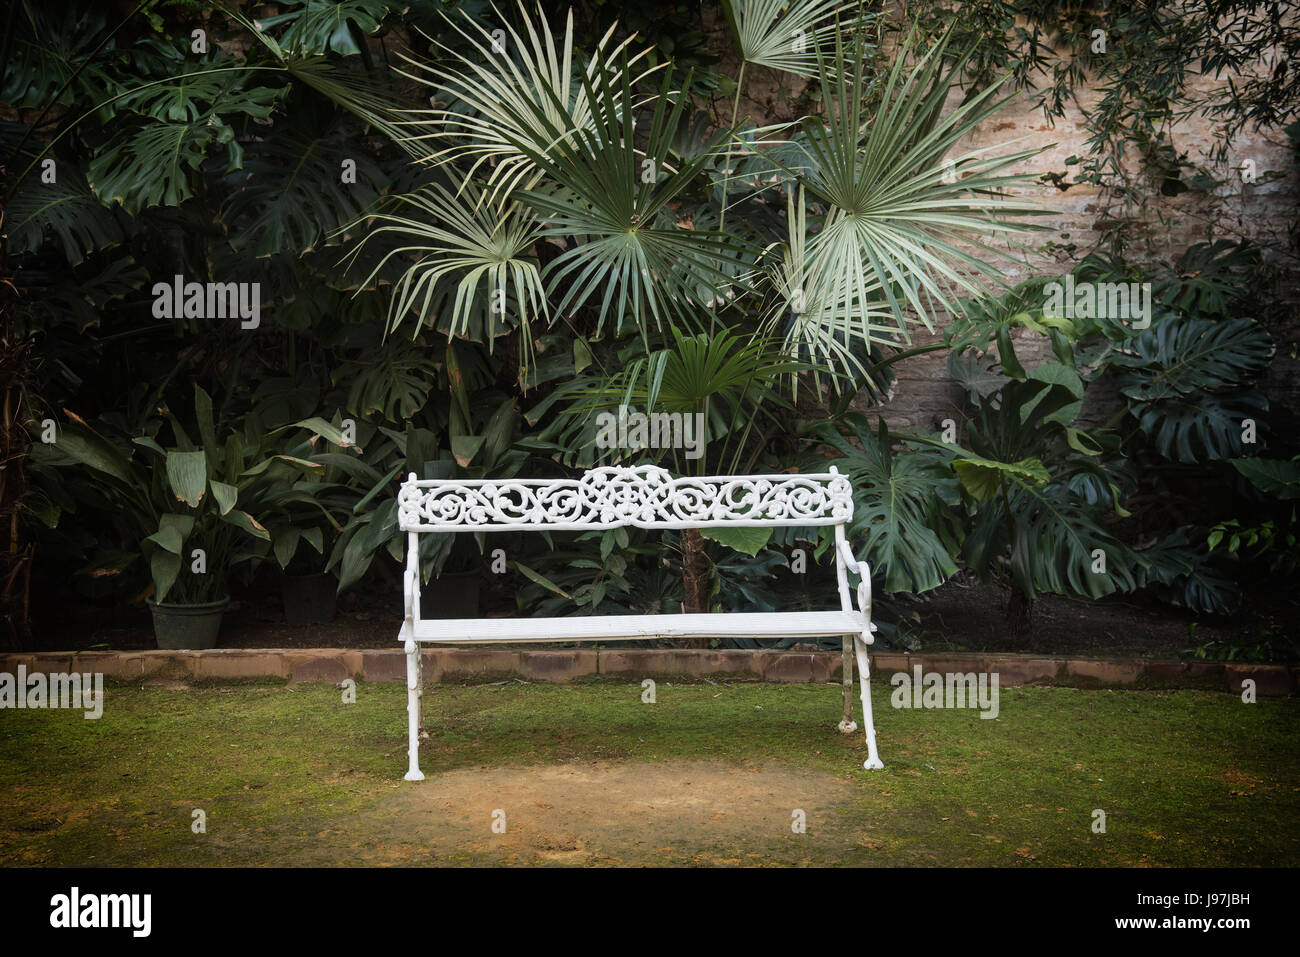 Spain, Andalusia, Seville, La Macarena, Ornate garden bench with palm plant - Stock Image